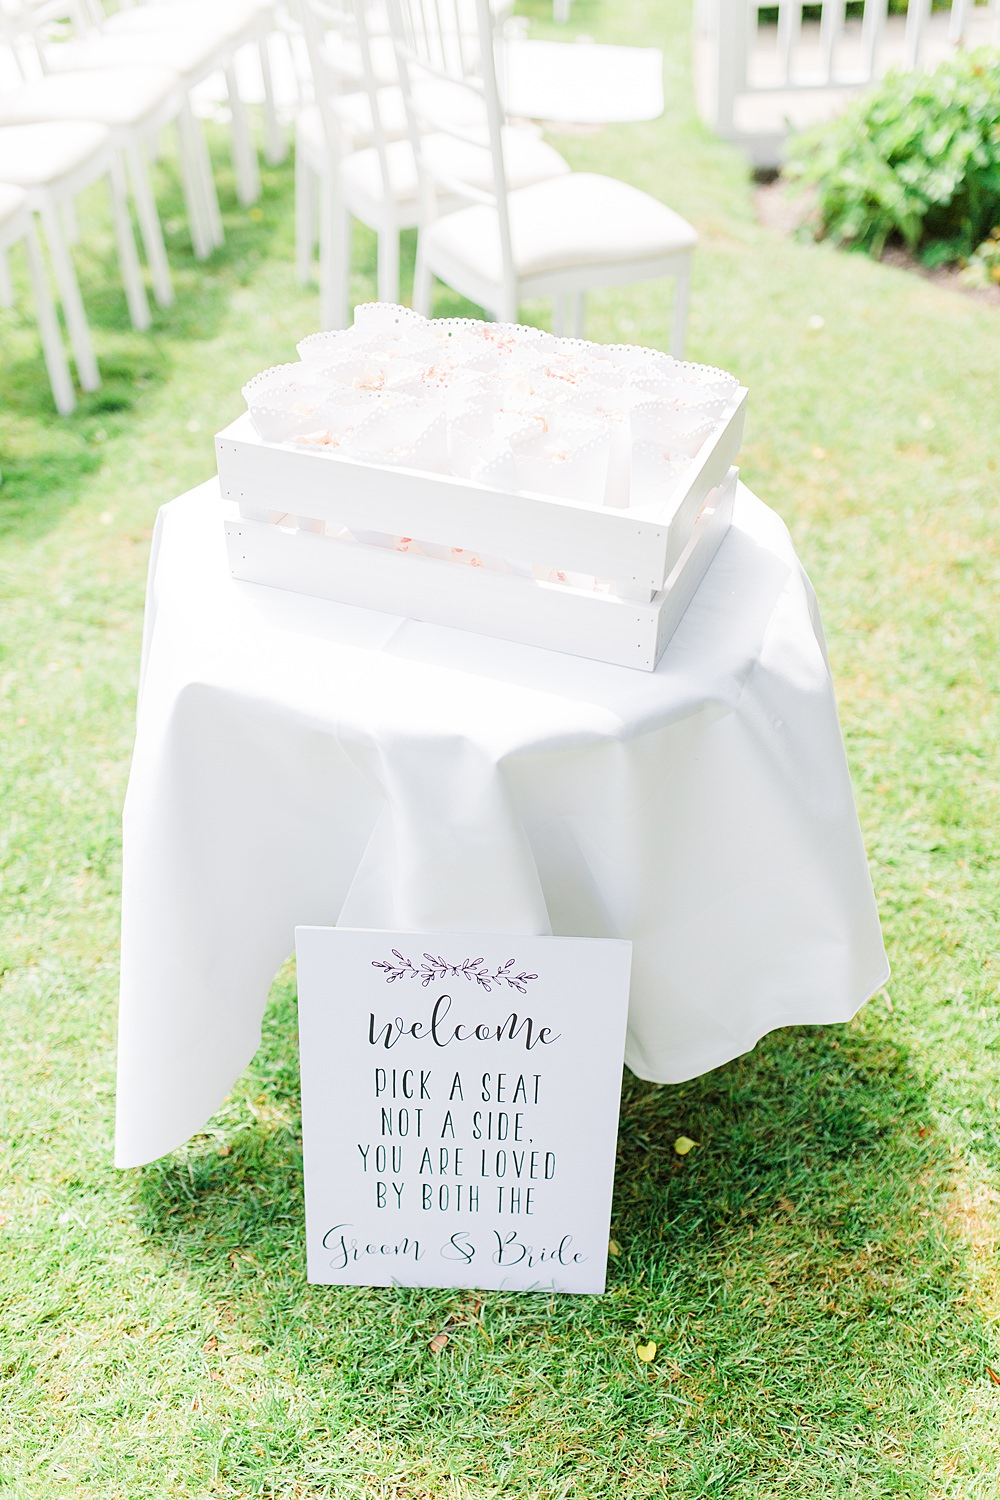 Confetti Cones Table Station Sheene Mill Wedding Terri & Lori Photography and Film Studio